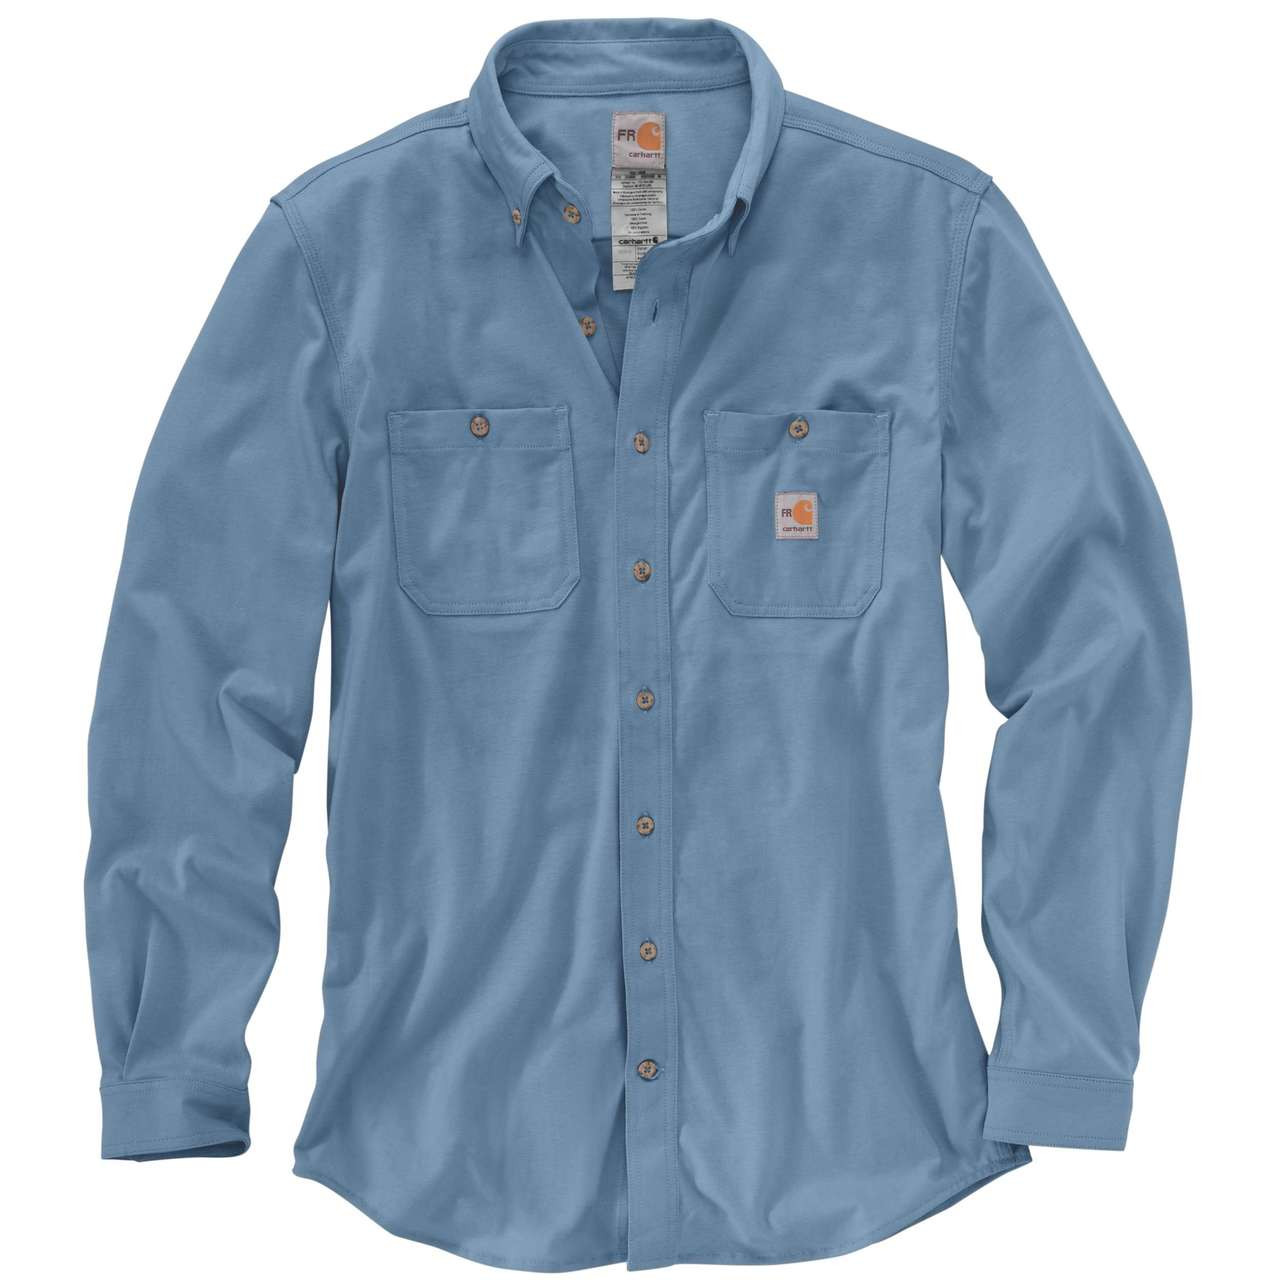 187915a28f00c Carhartt FR Cotton Hybrid Shirt in medium Blue - 101698-465